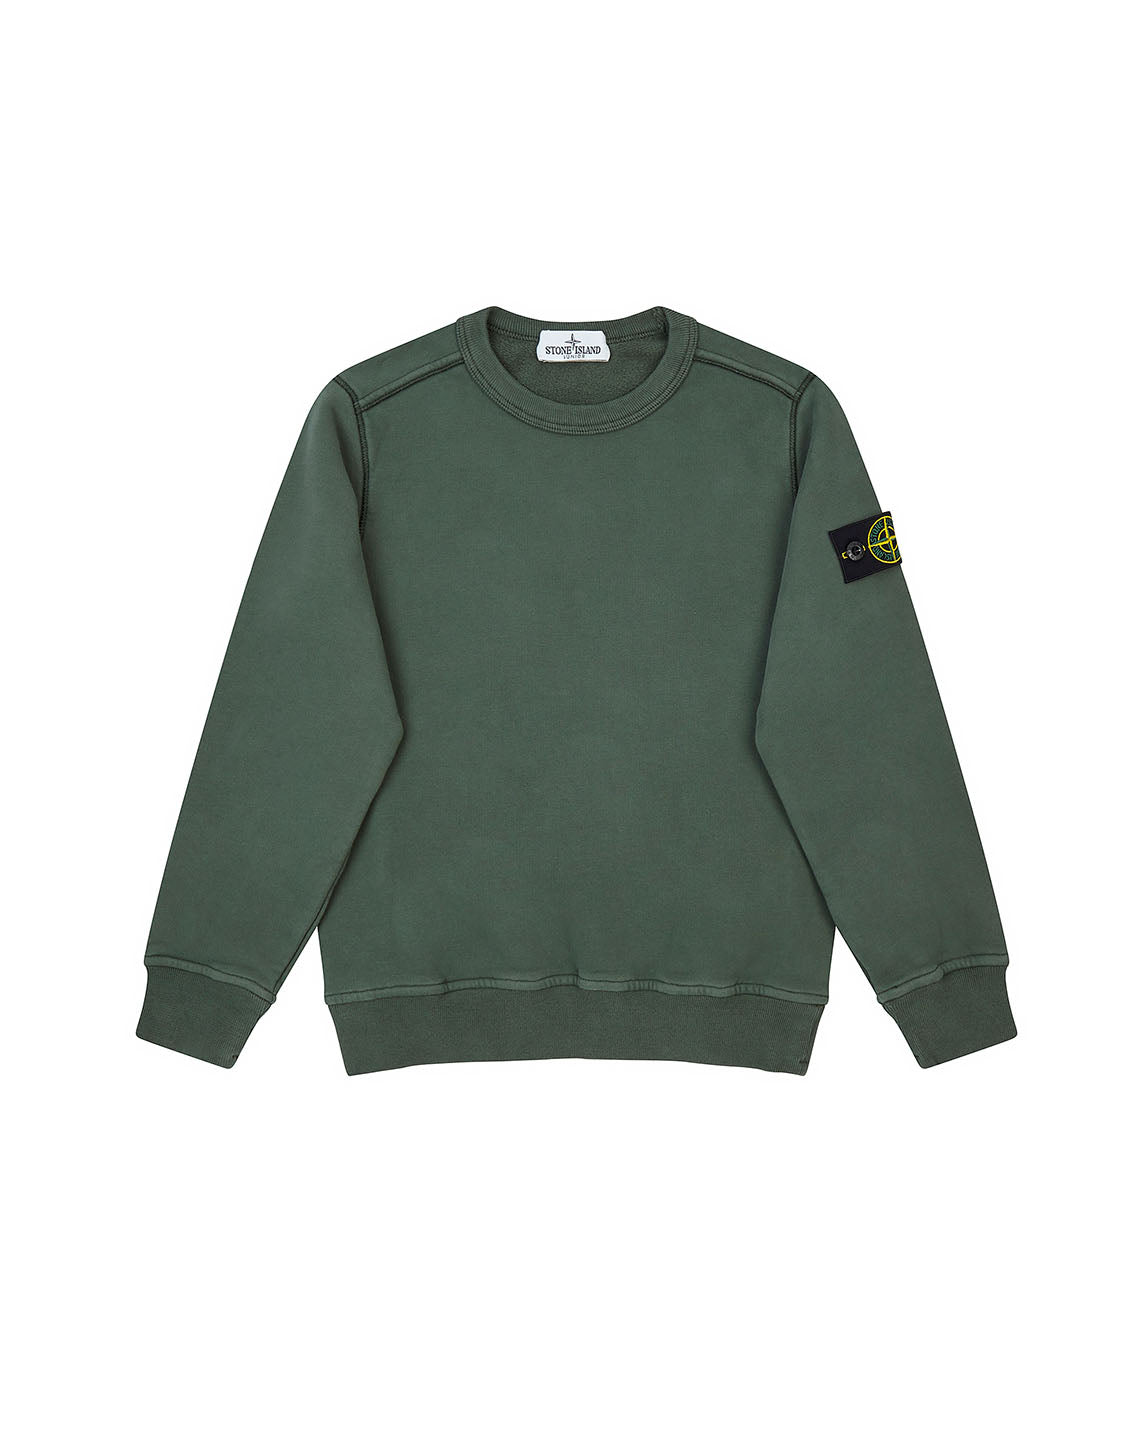 60940 Crewneck Sweatshirt in Bottle Green